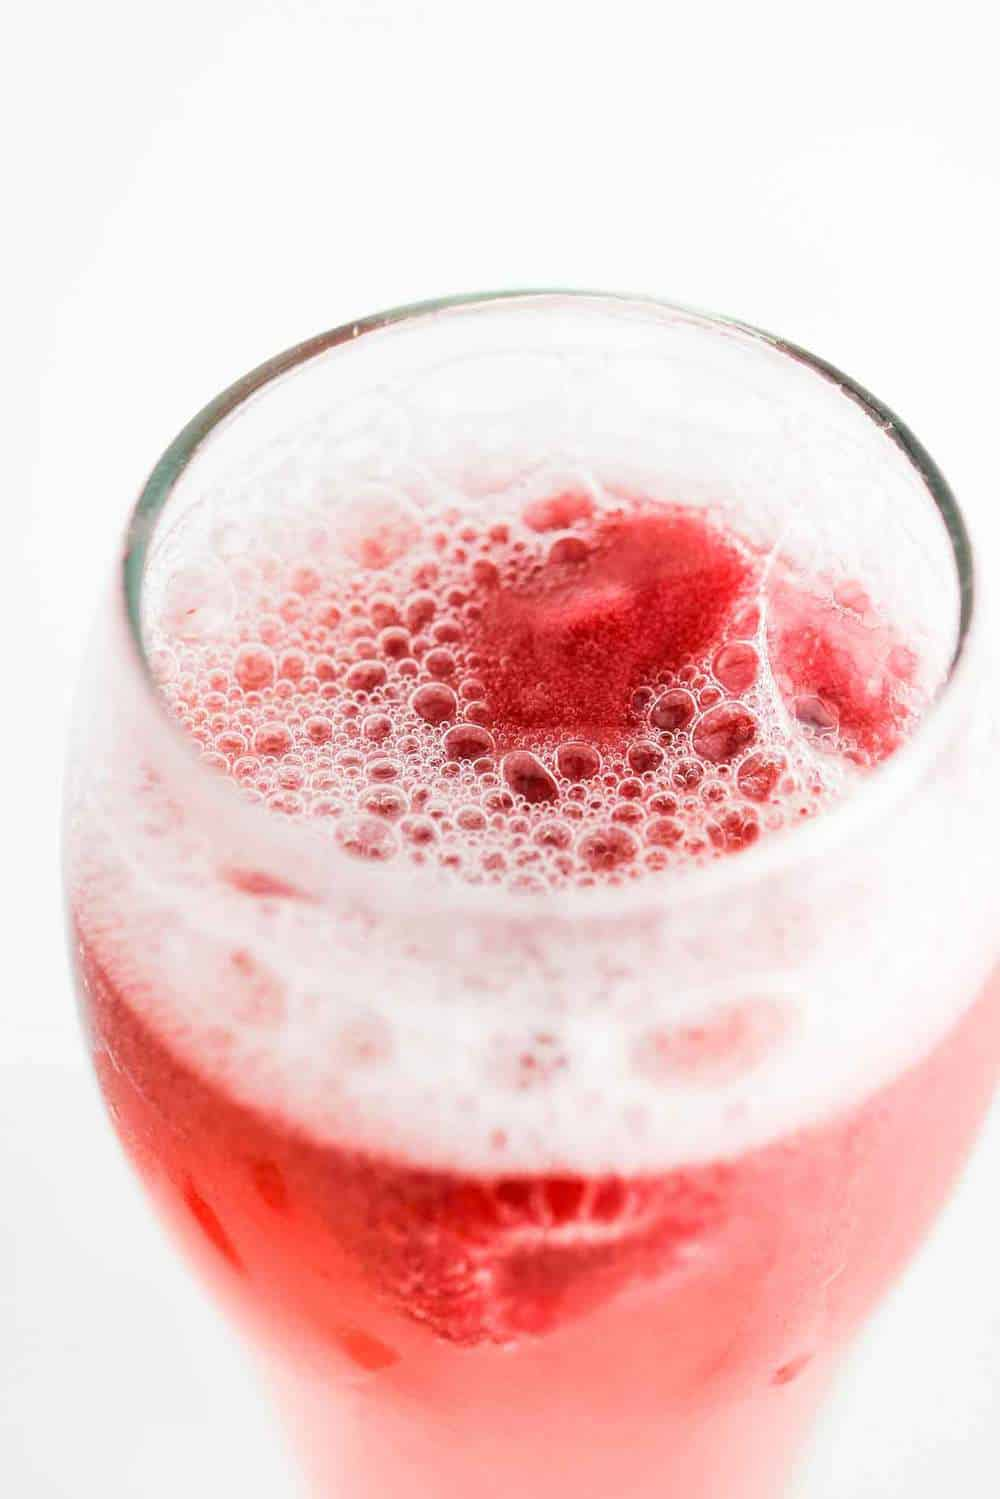 Overhead view of a sgroppino cocktail with a raspberry floating on top.